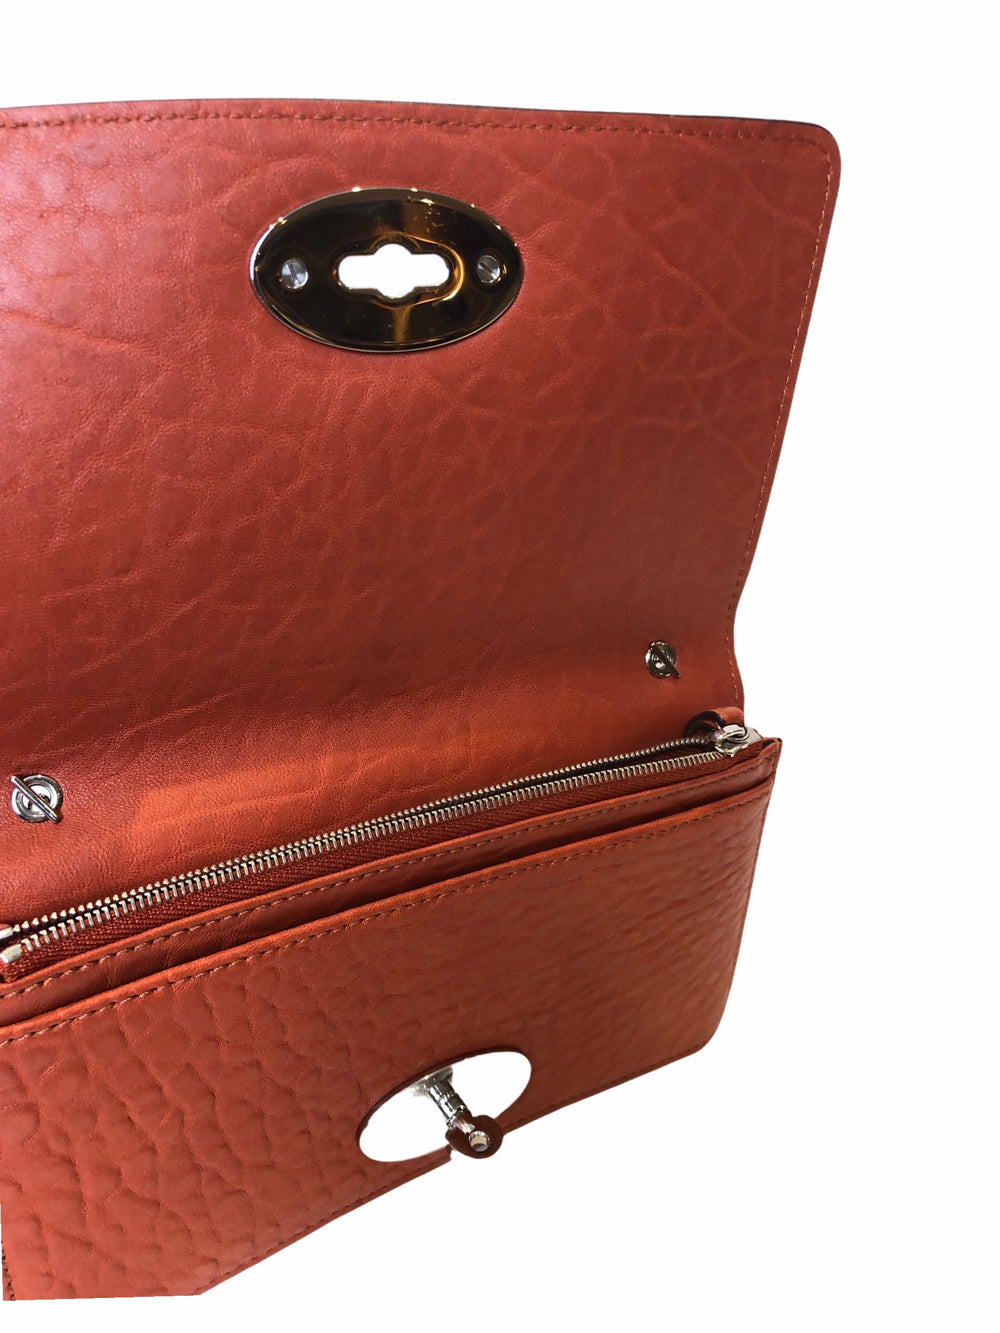 Mulberry Burnt Orange Leather Crossbody - As Seen on Instagram